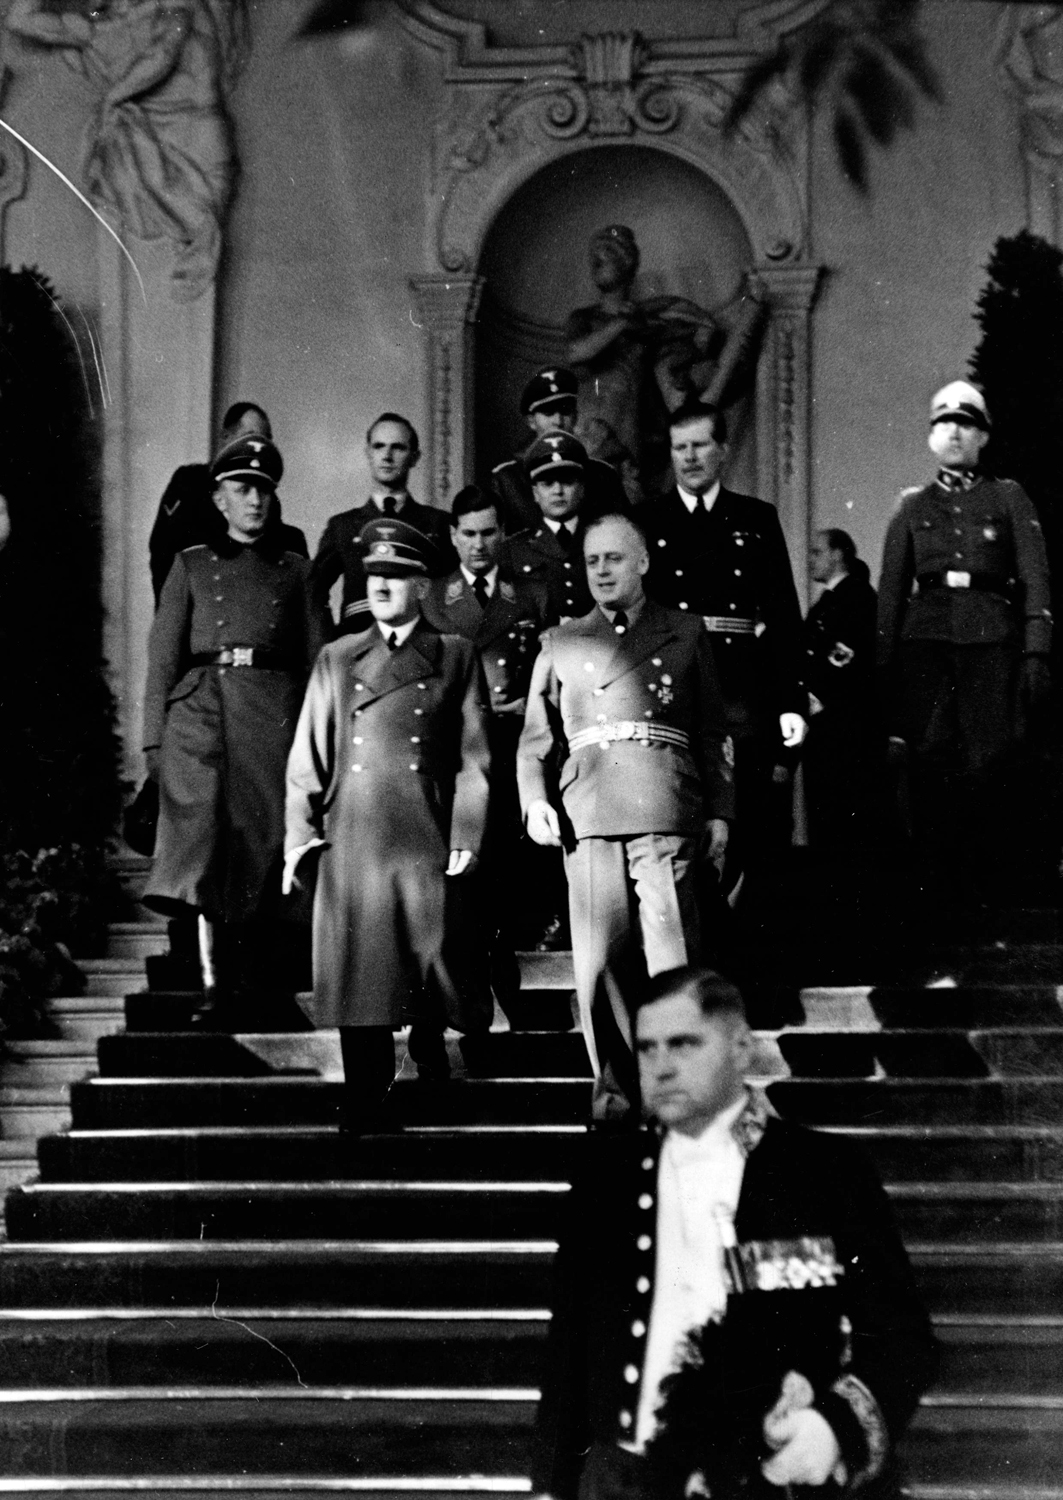 Adolf Hitler and Joachim von Ribbentrop leave Vienna's Belvedere Palace after Hungary joined the Tripartite Pact